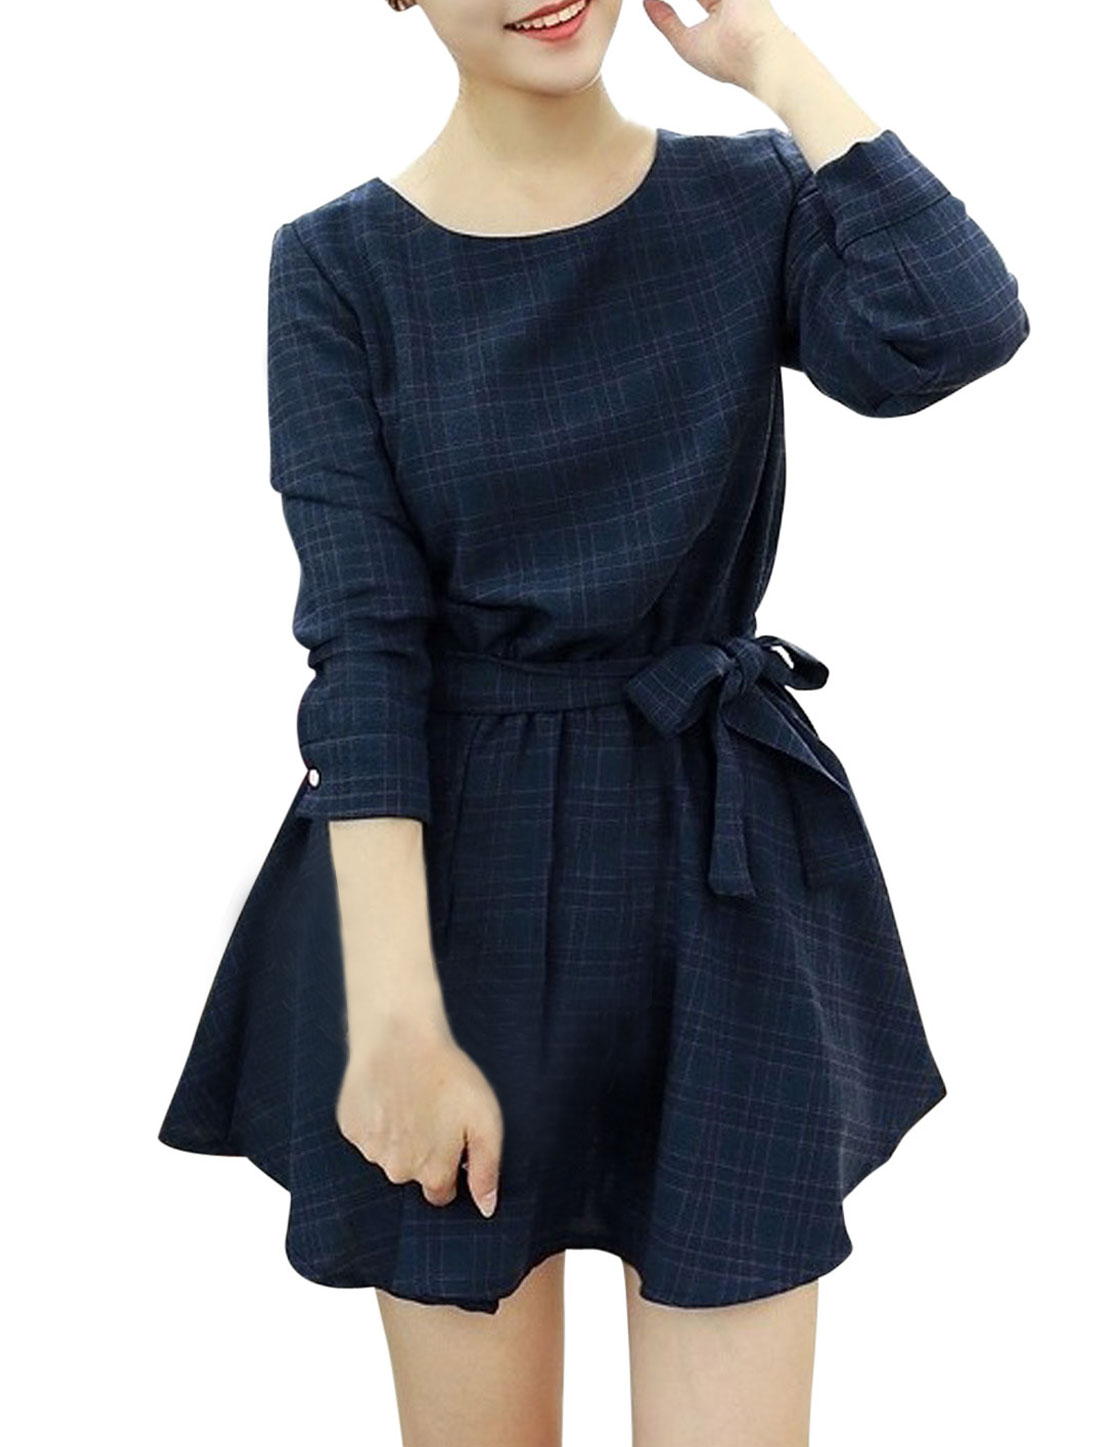 Ladies Navy Blue Plaids Front Pockets Elastic Waist Dress w Strap M